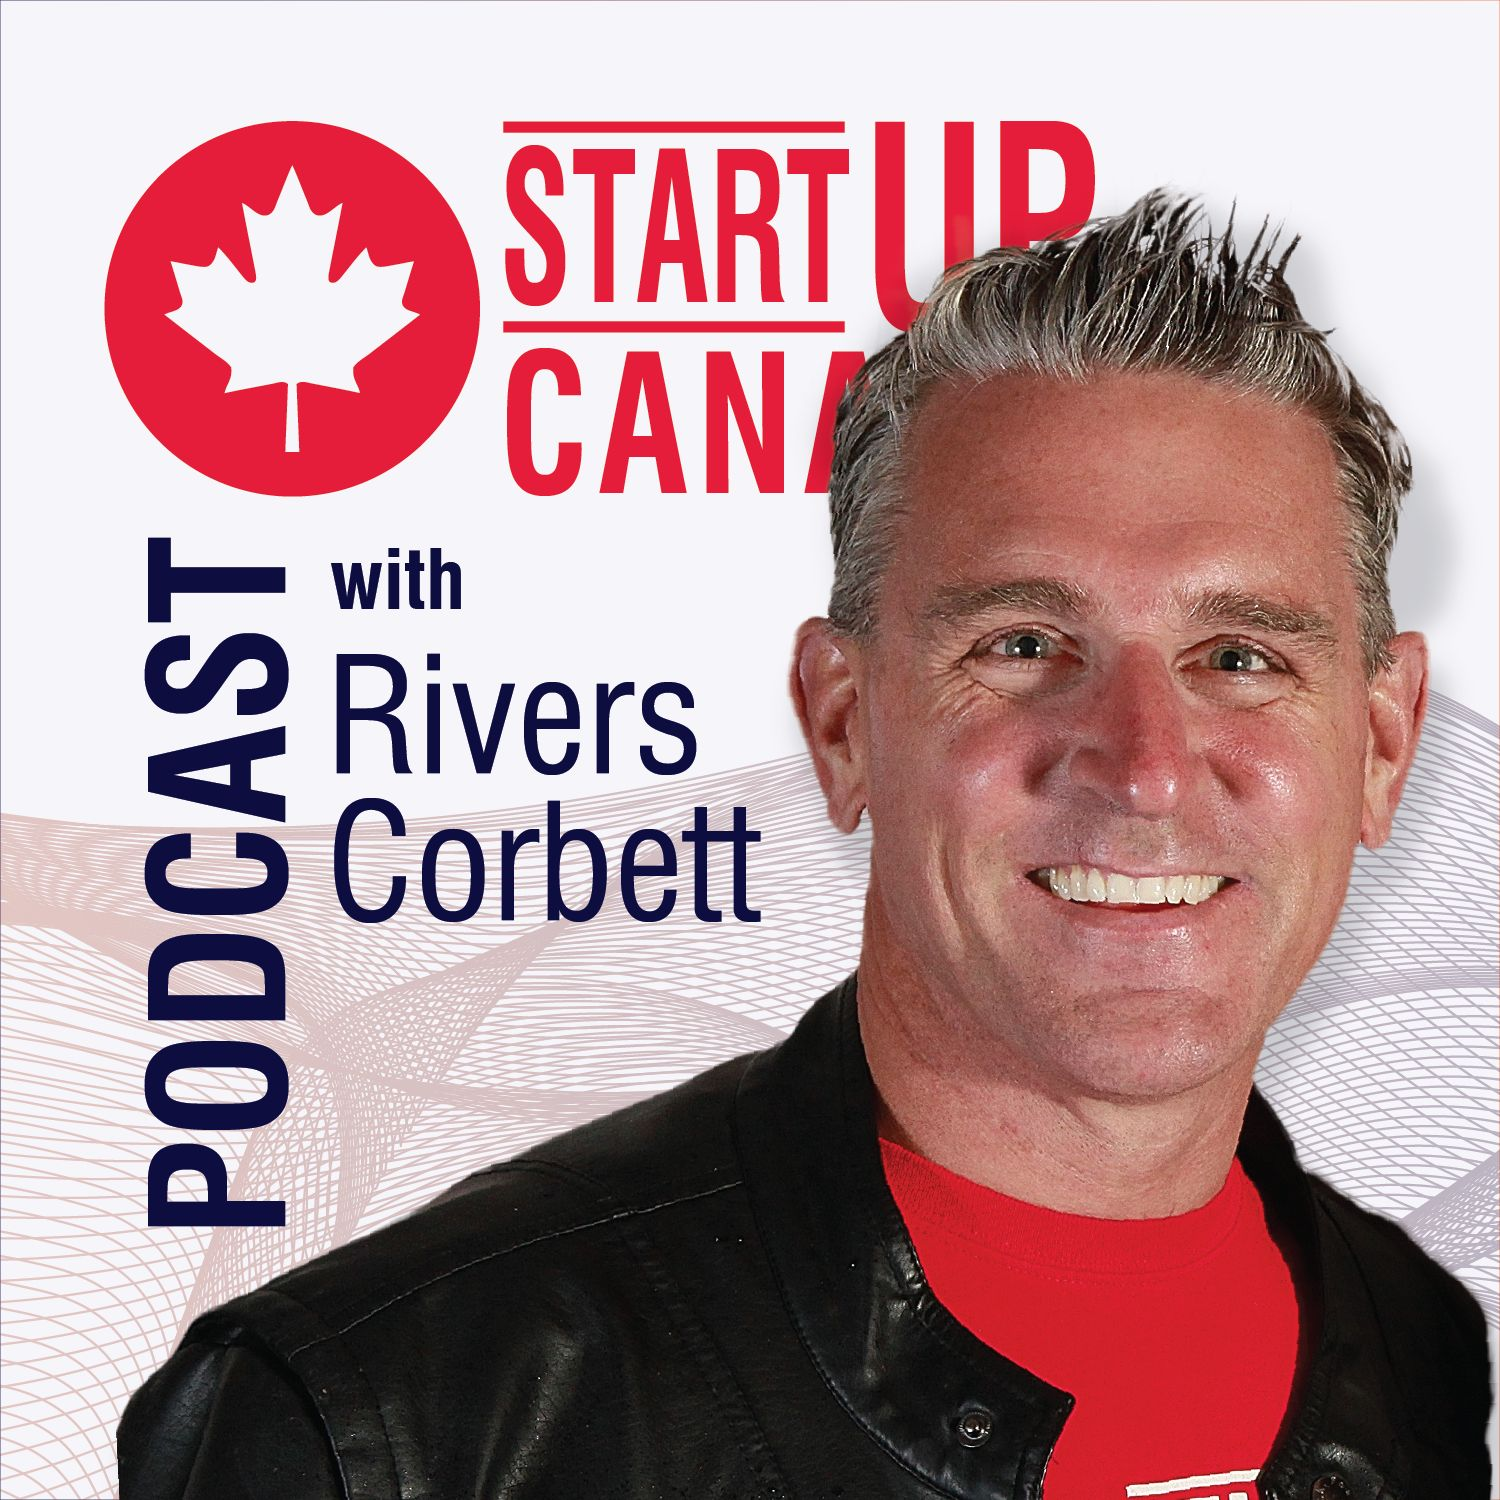 Startup Canada Podcast E212 - Open Innovation is the New Black with Aurelie Wen